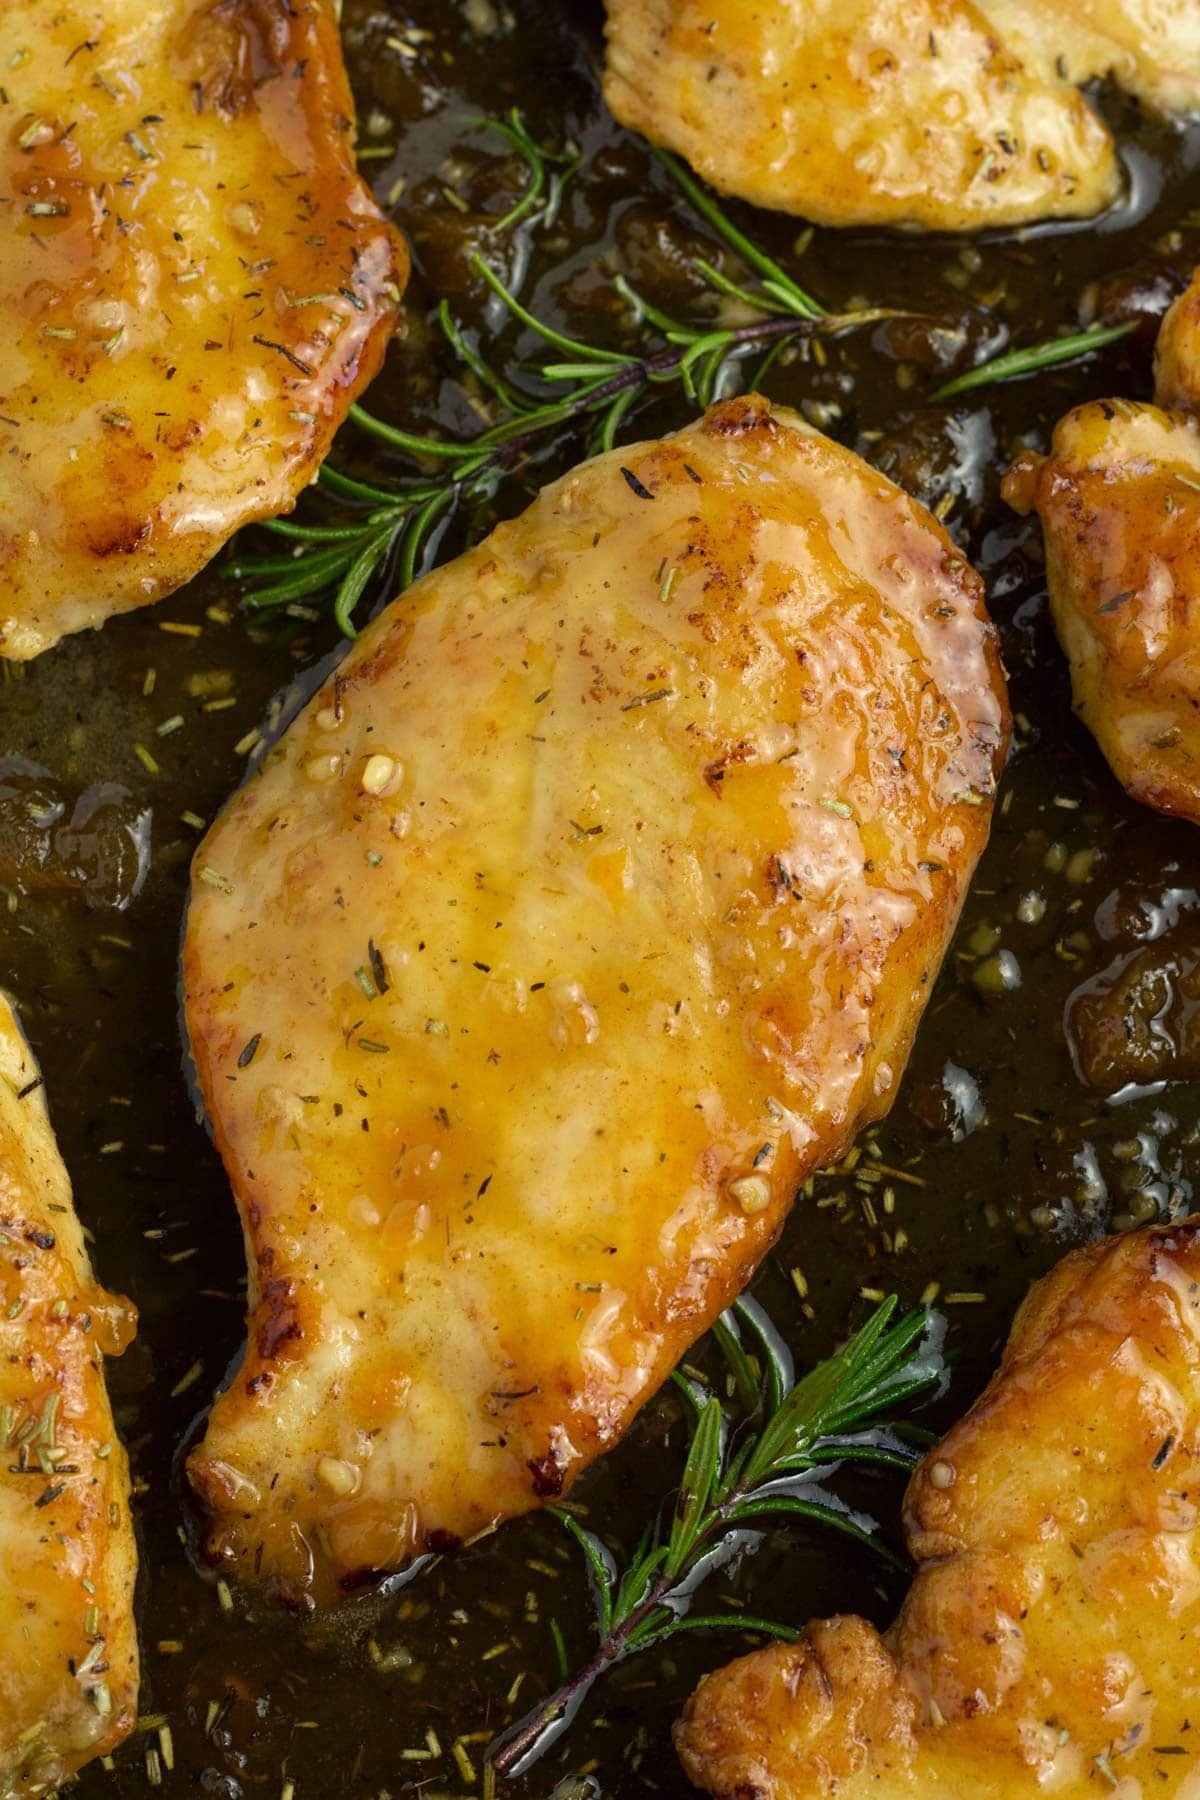 Apricot chicken in electric skillet with fresh herbs on the side.